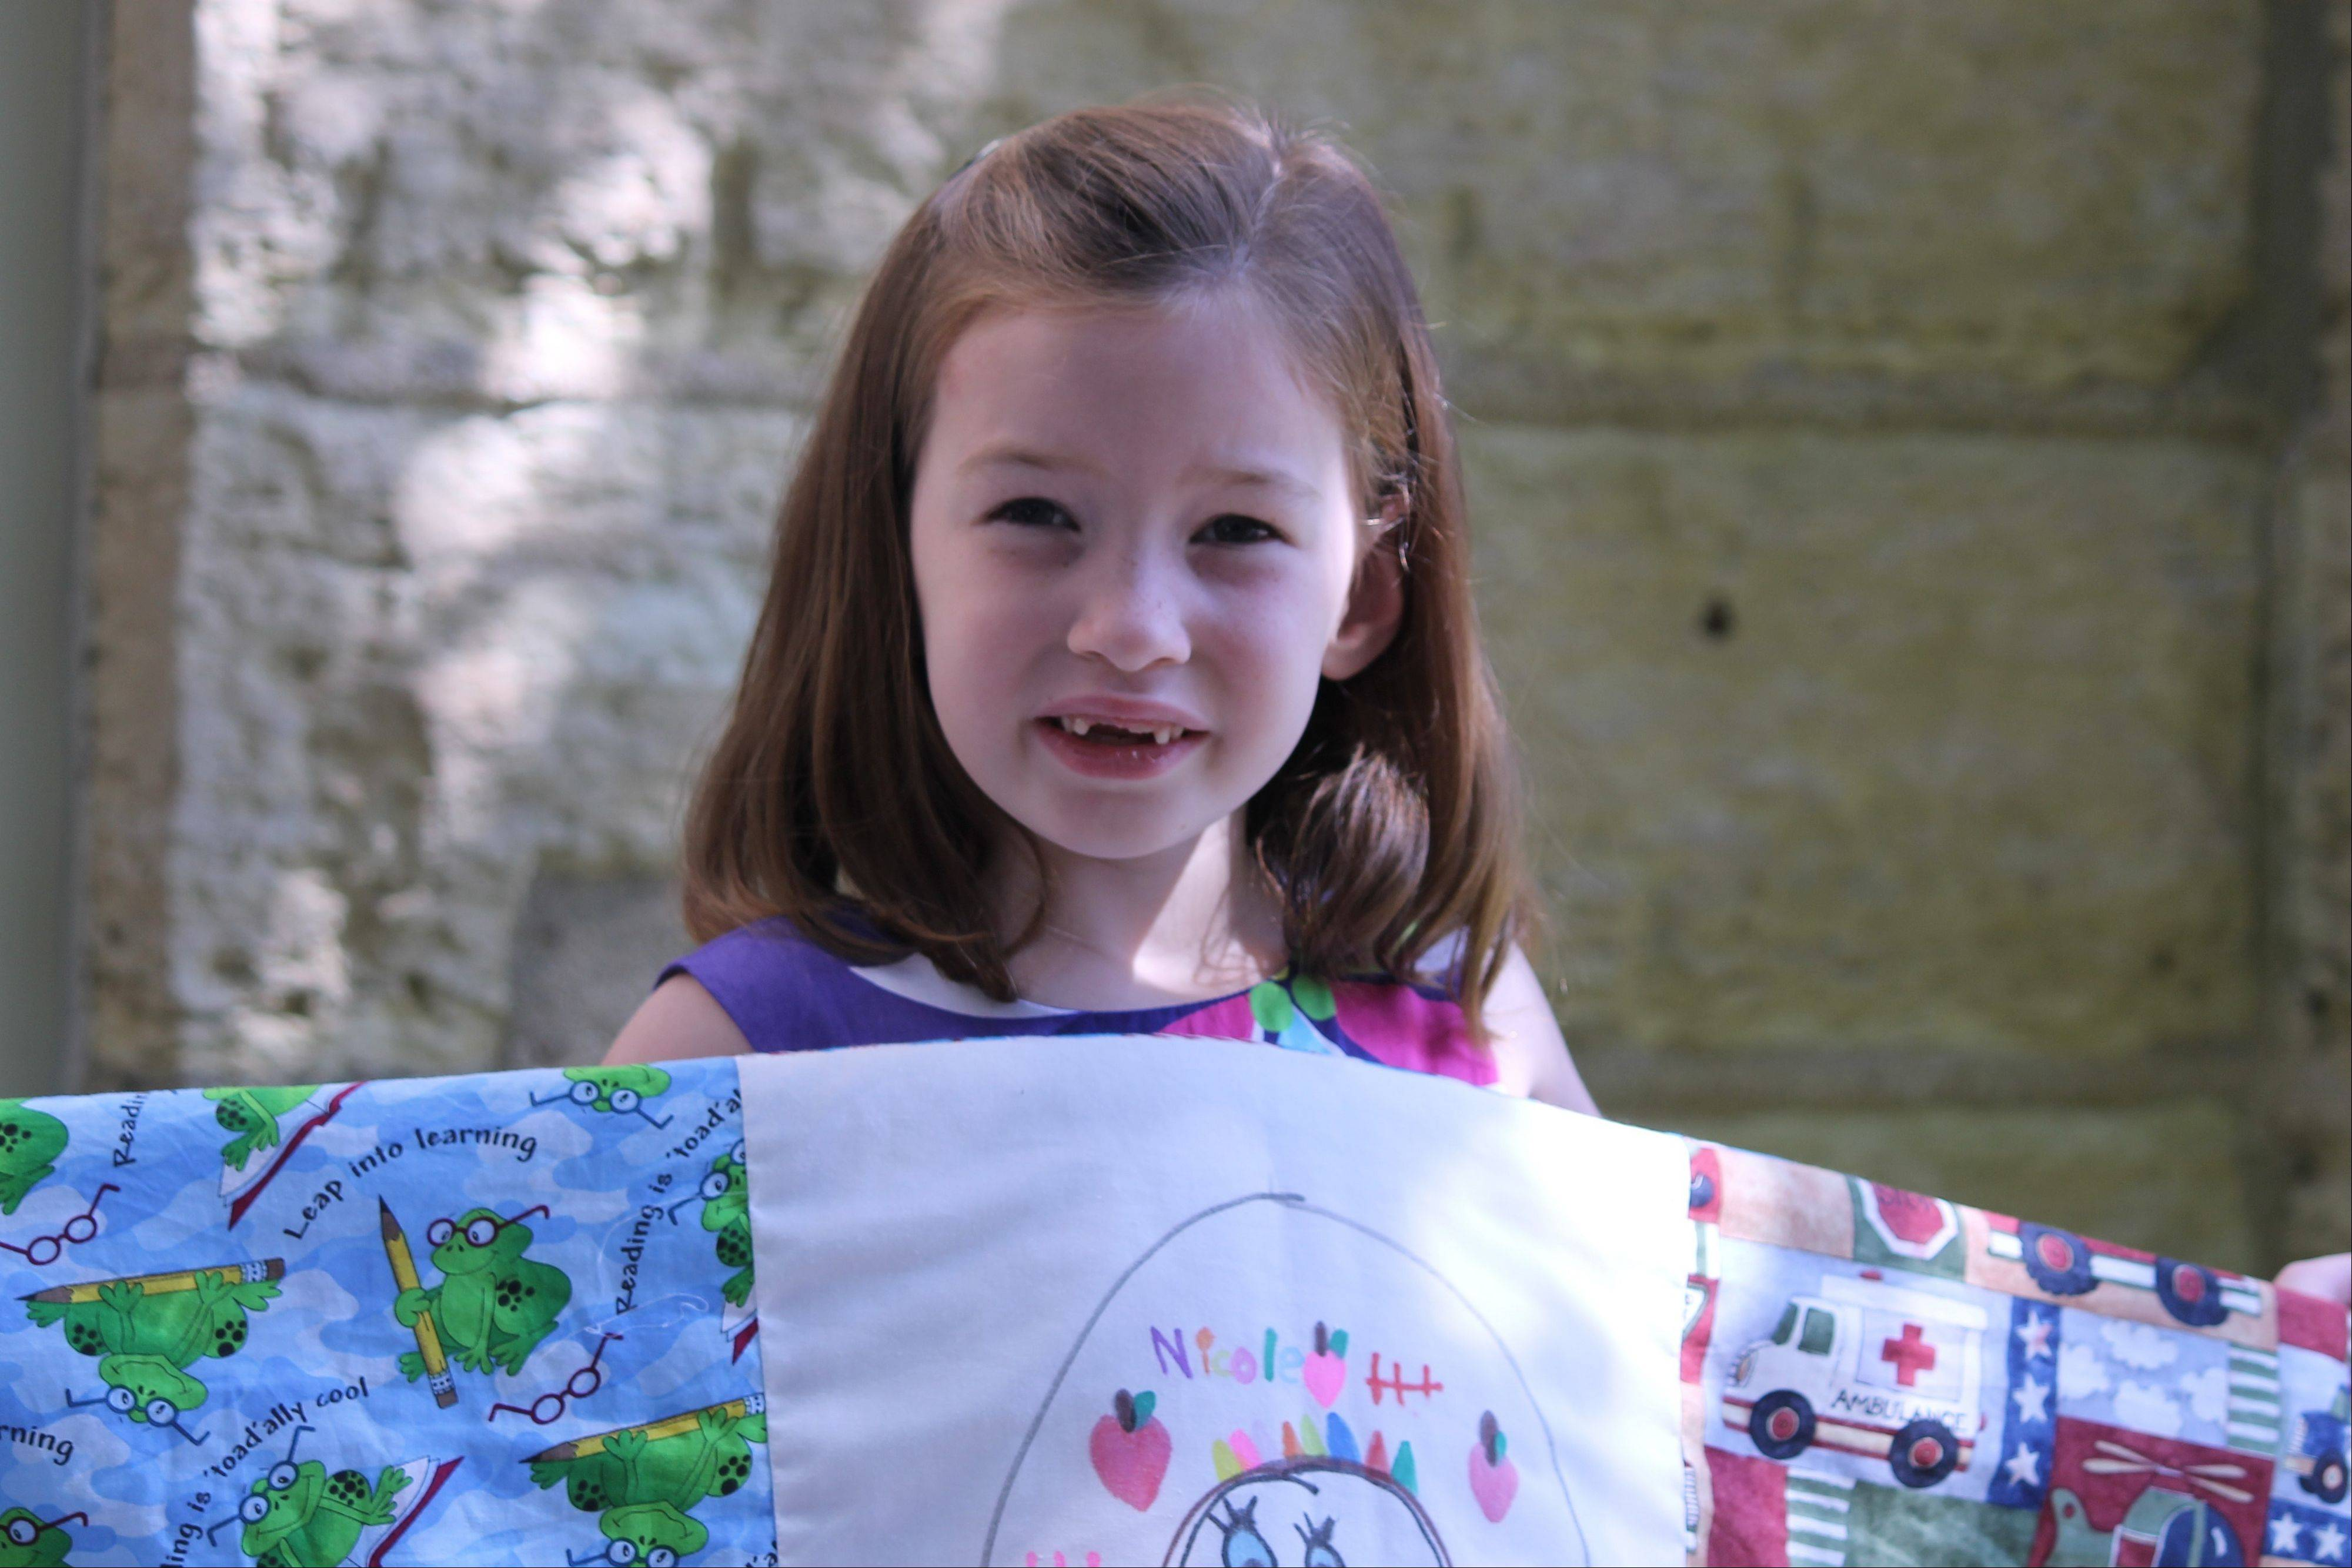 Nicole Magerkurth, 5, displays her first quilt. Inspired by Batavia's Quilt and Textile Show, Nicole plans to enter a quilt in next year's show.